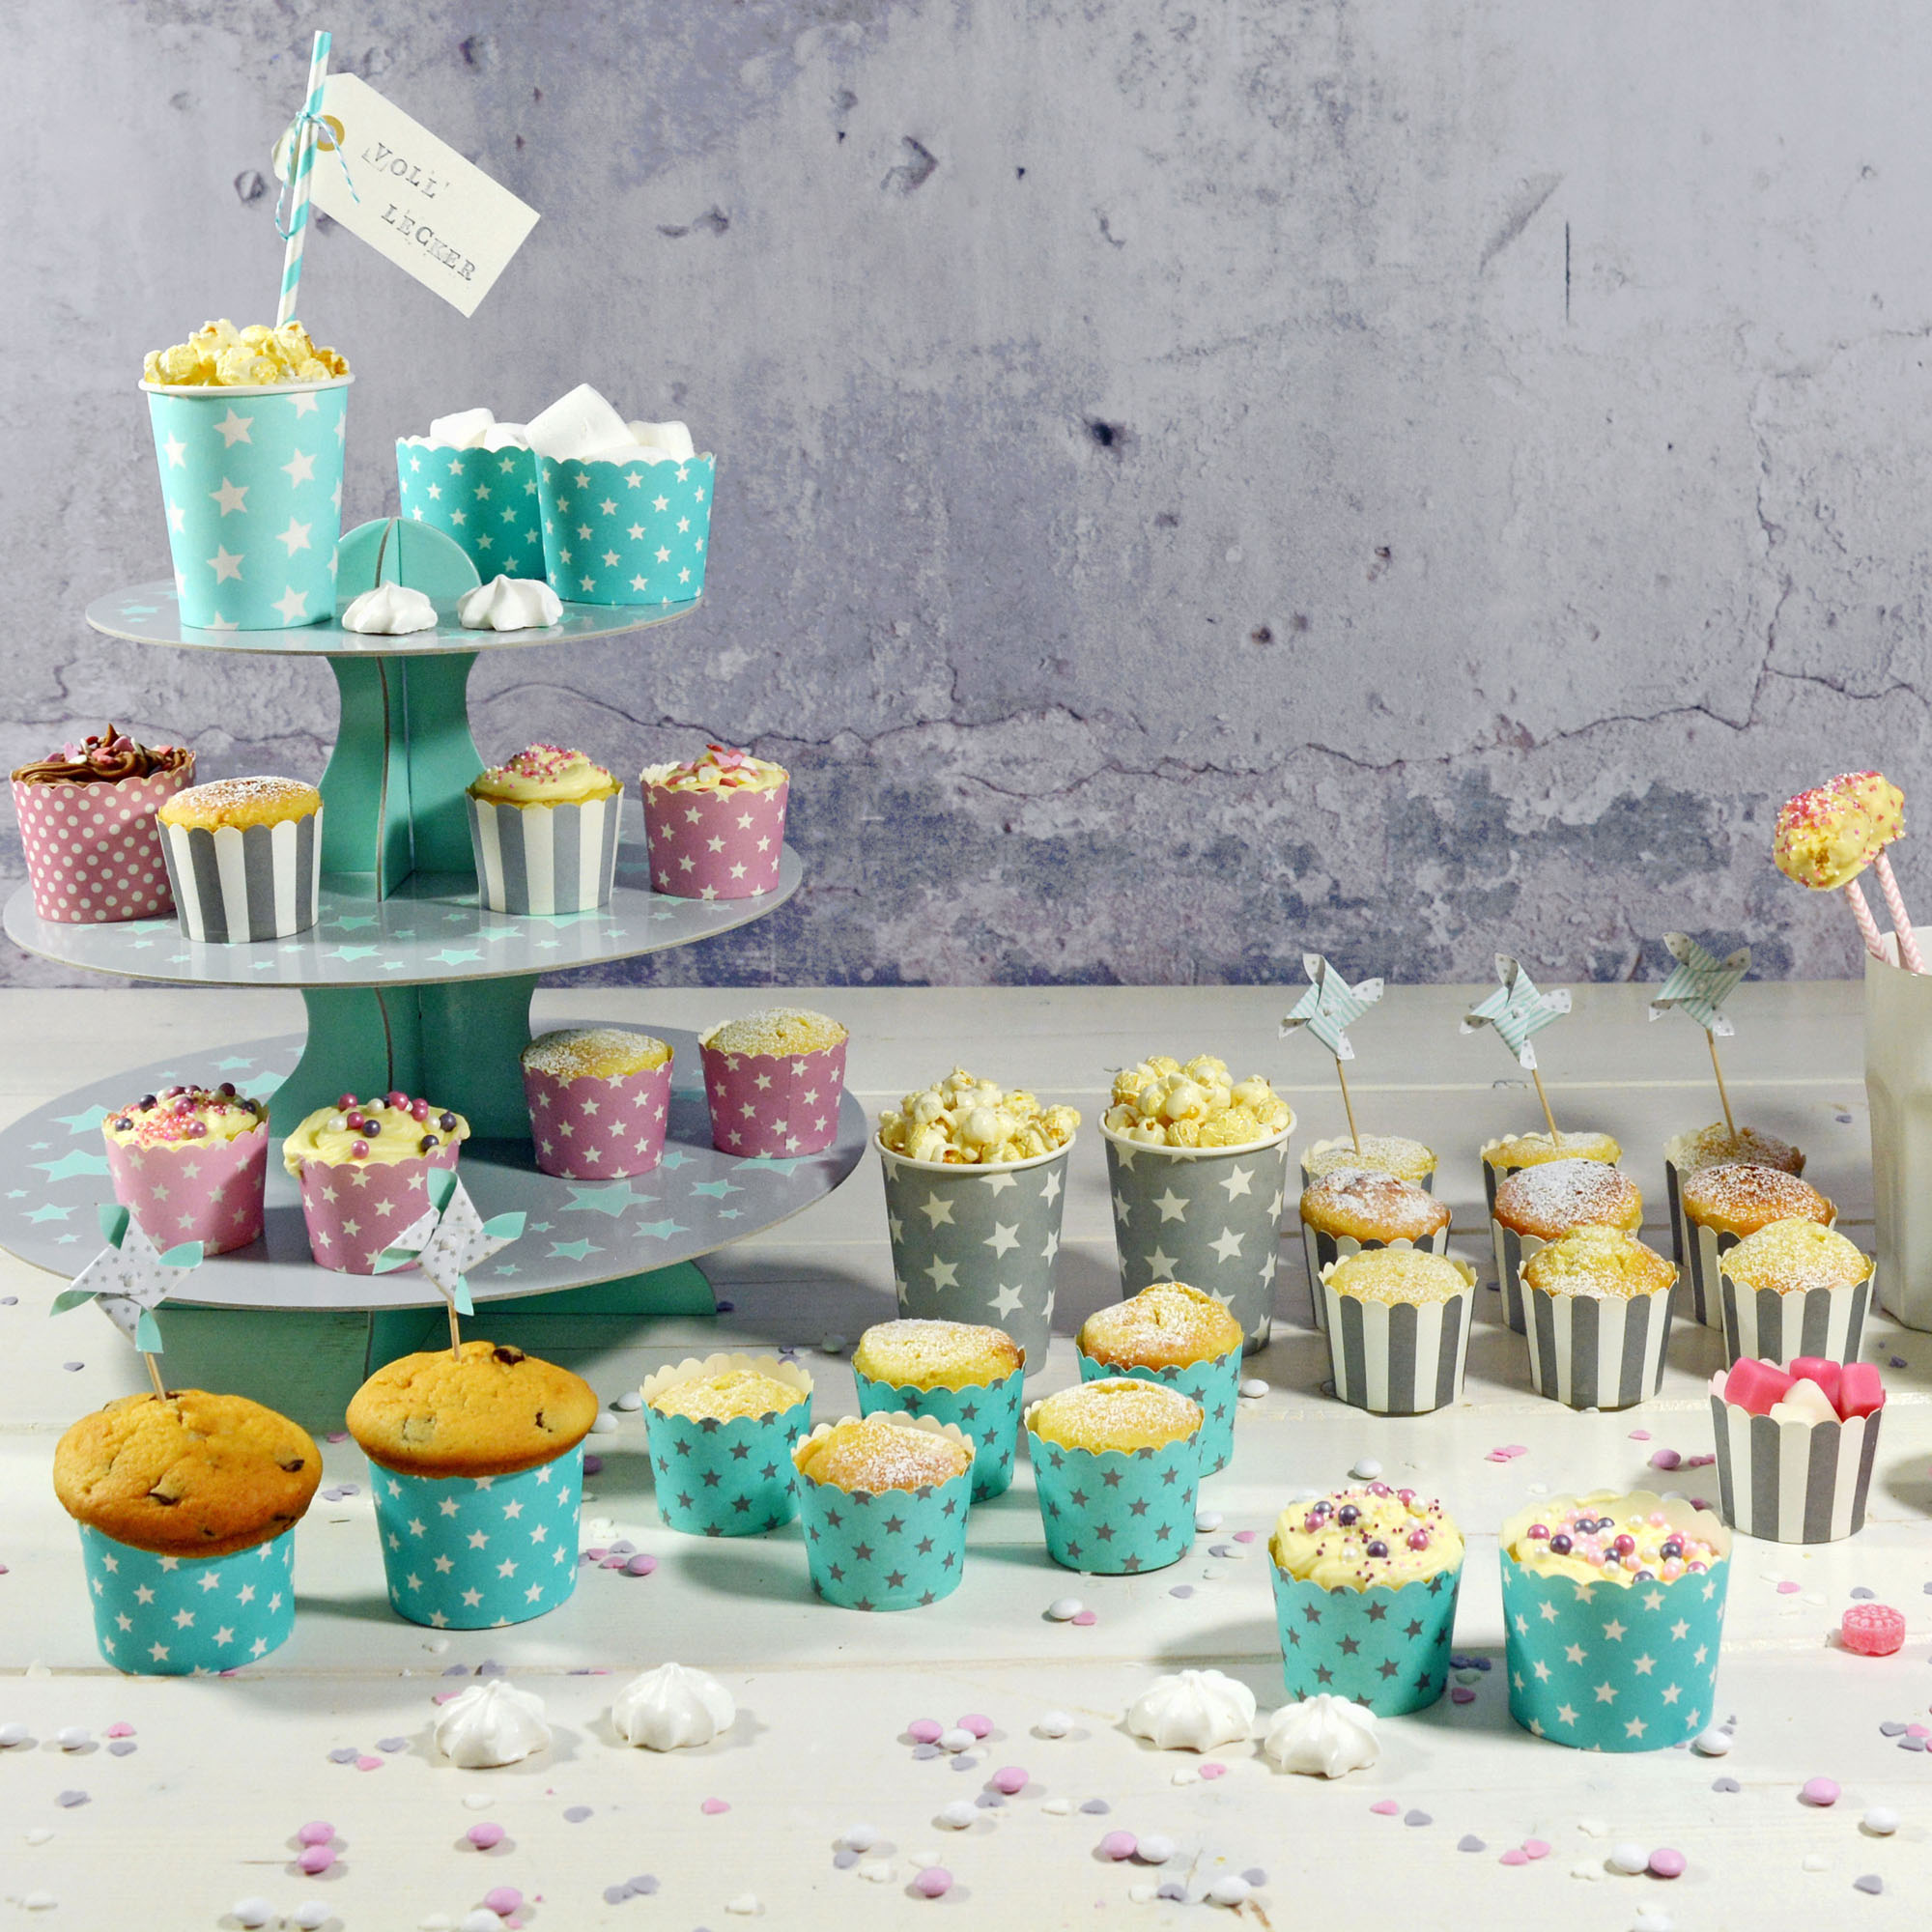 muffin cupcake kuchenstecker topper candy bar sweet table. Black Bedroom Furniture Sets. Home Design Ideas